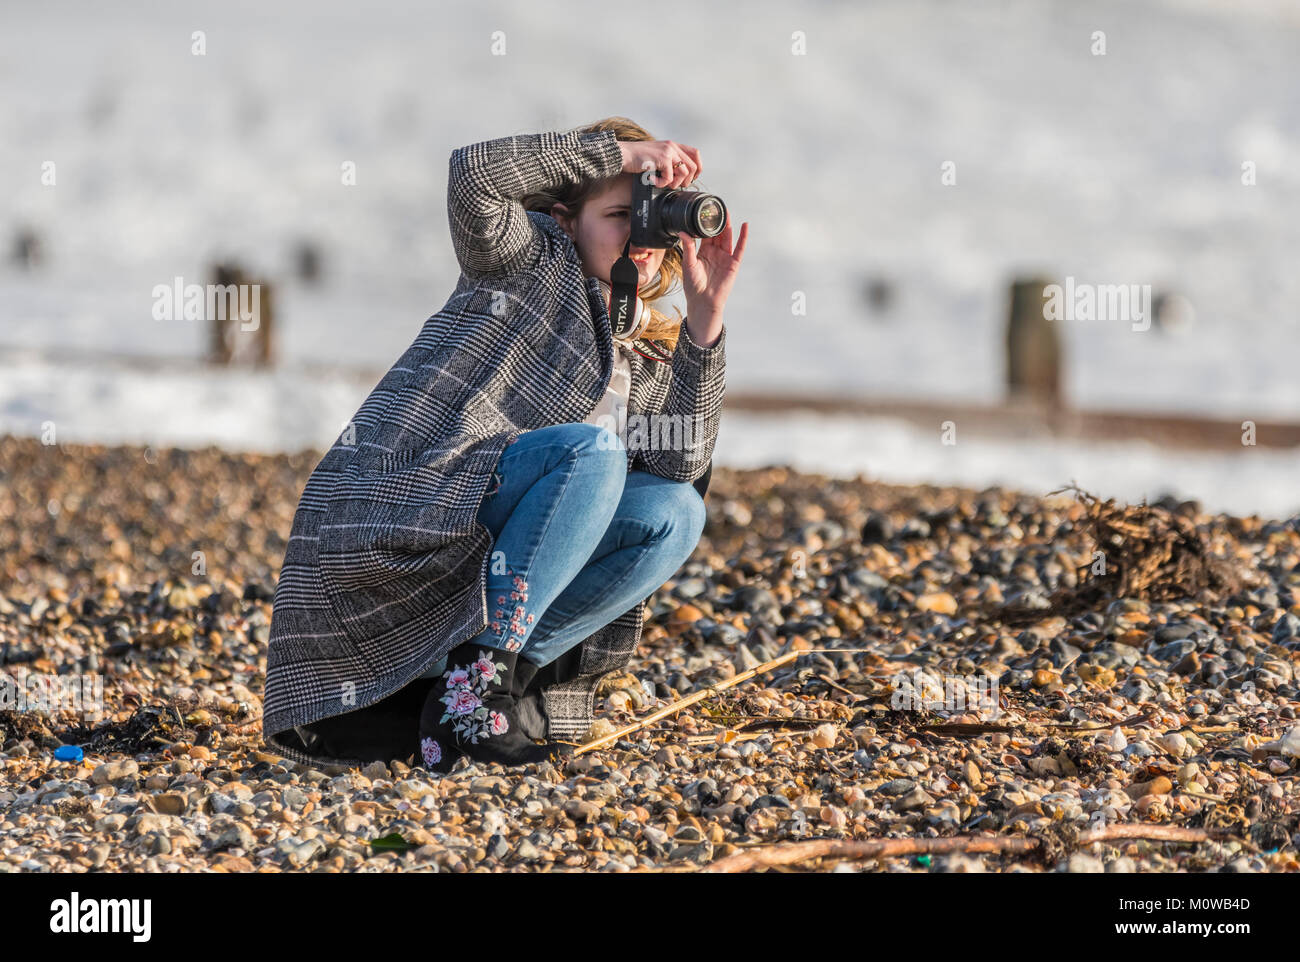 Young woman female photographer crouched down taking photos on a beach. - Stock Image